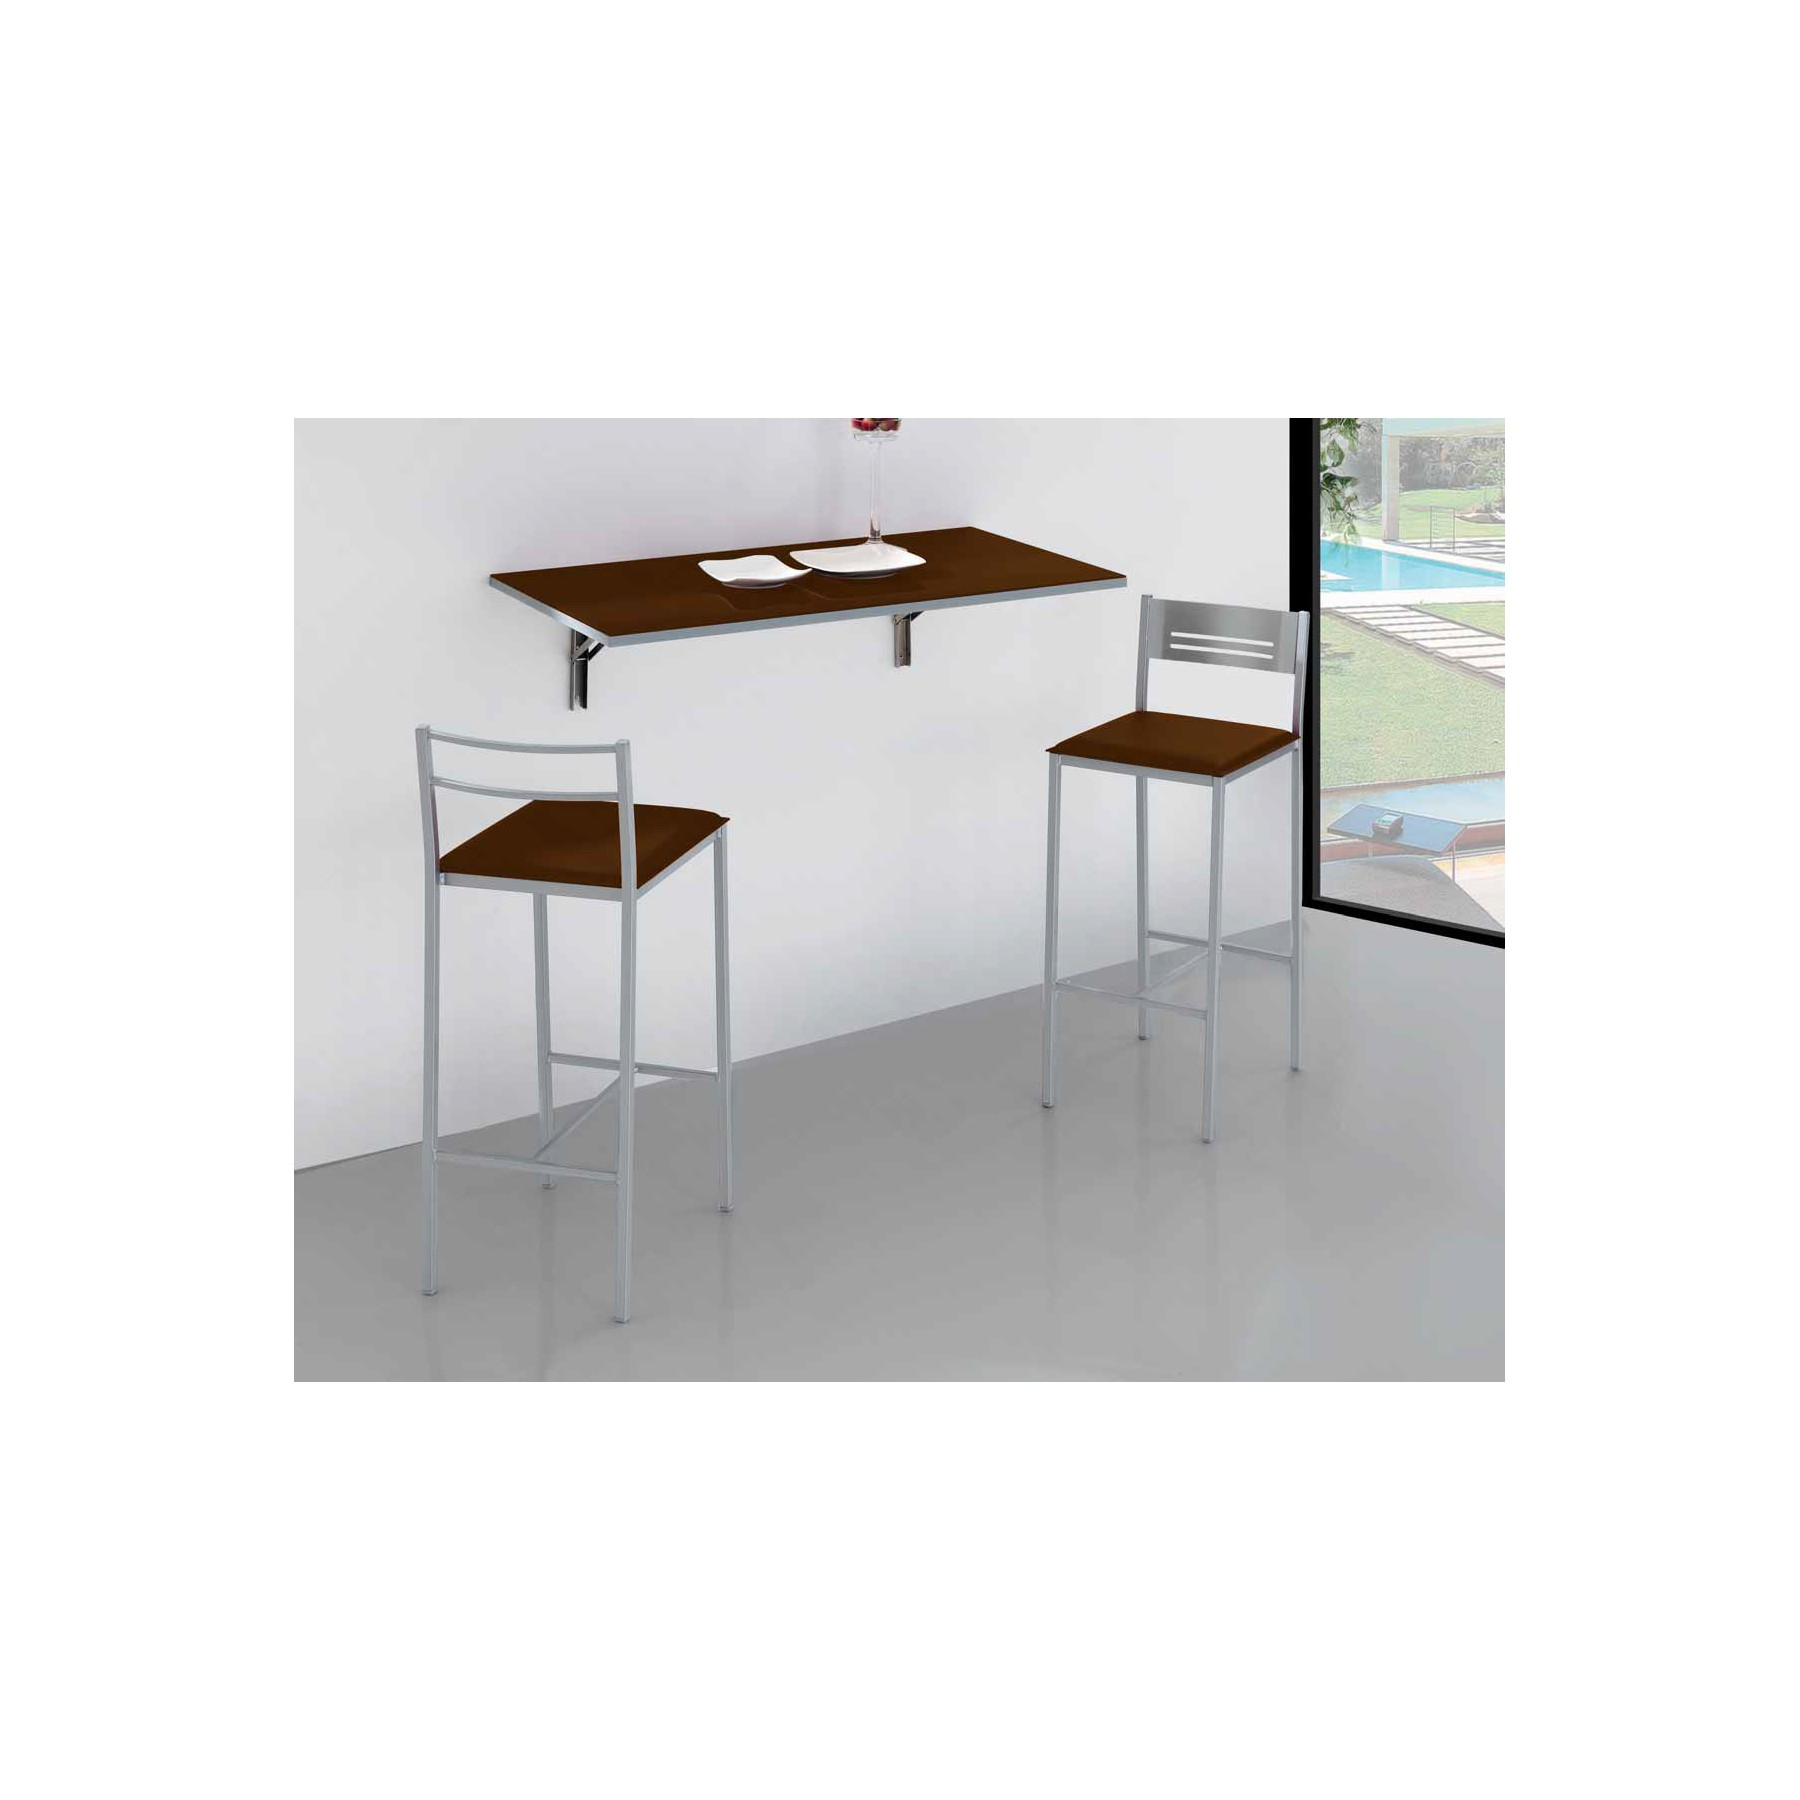 Mesa de cocina de pared plegable simple dkg - Mesas plegables a la pared ...